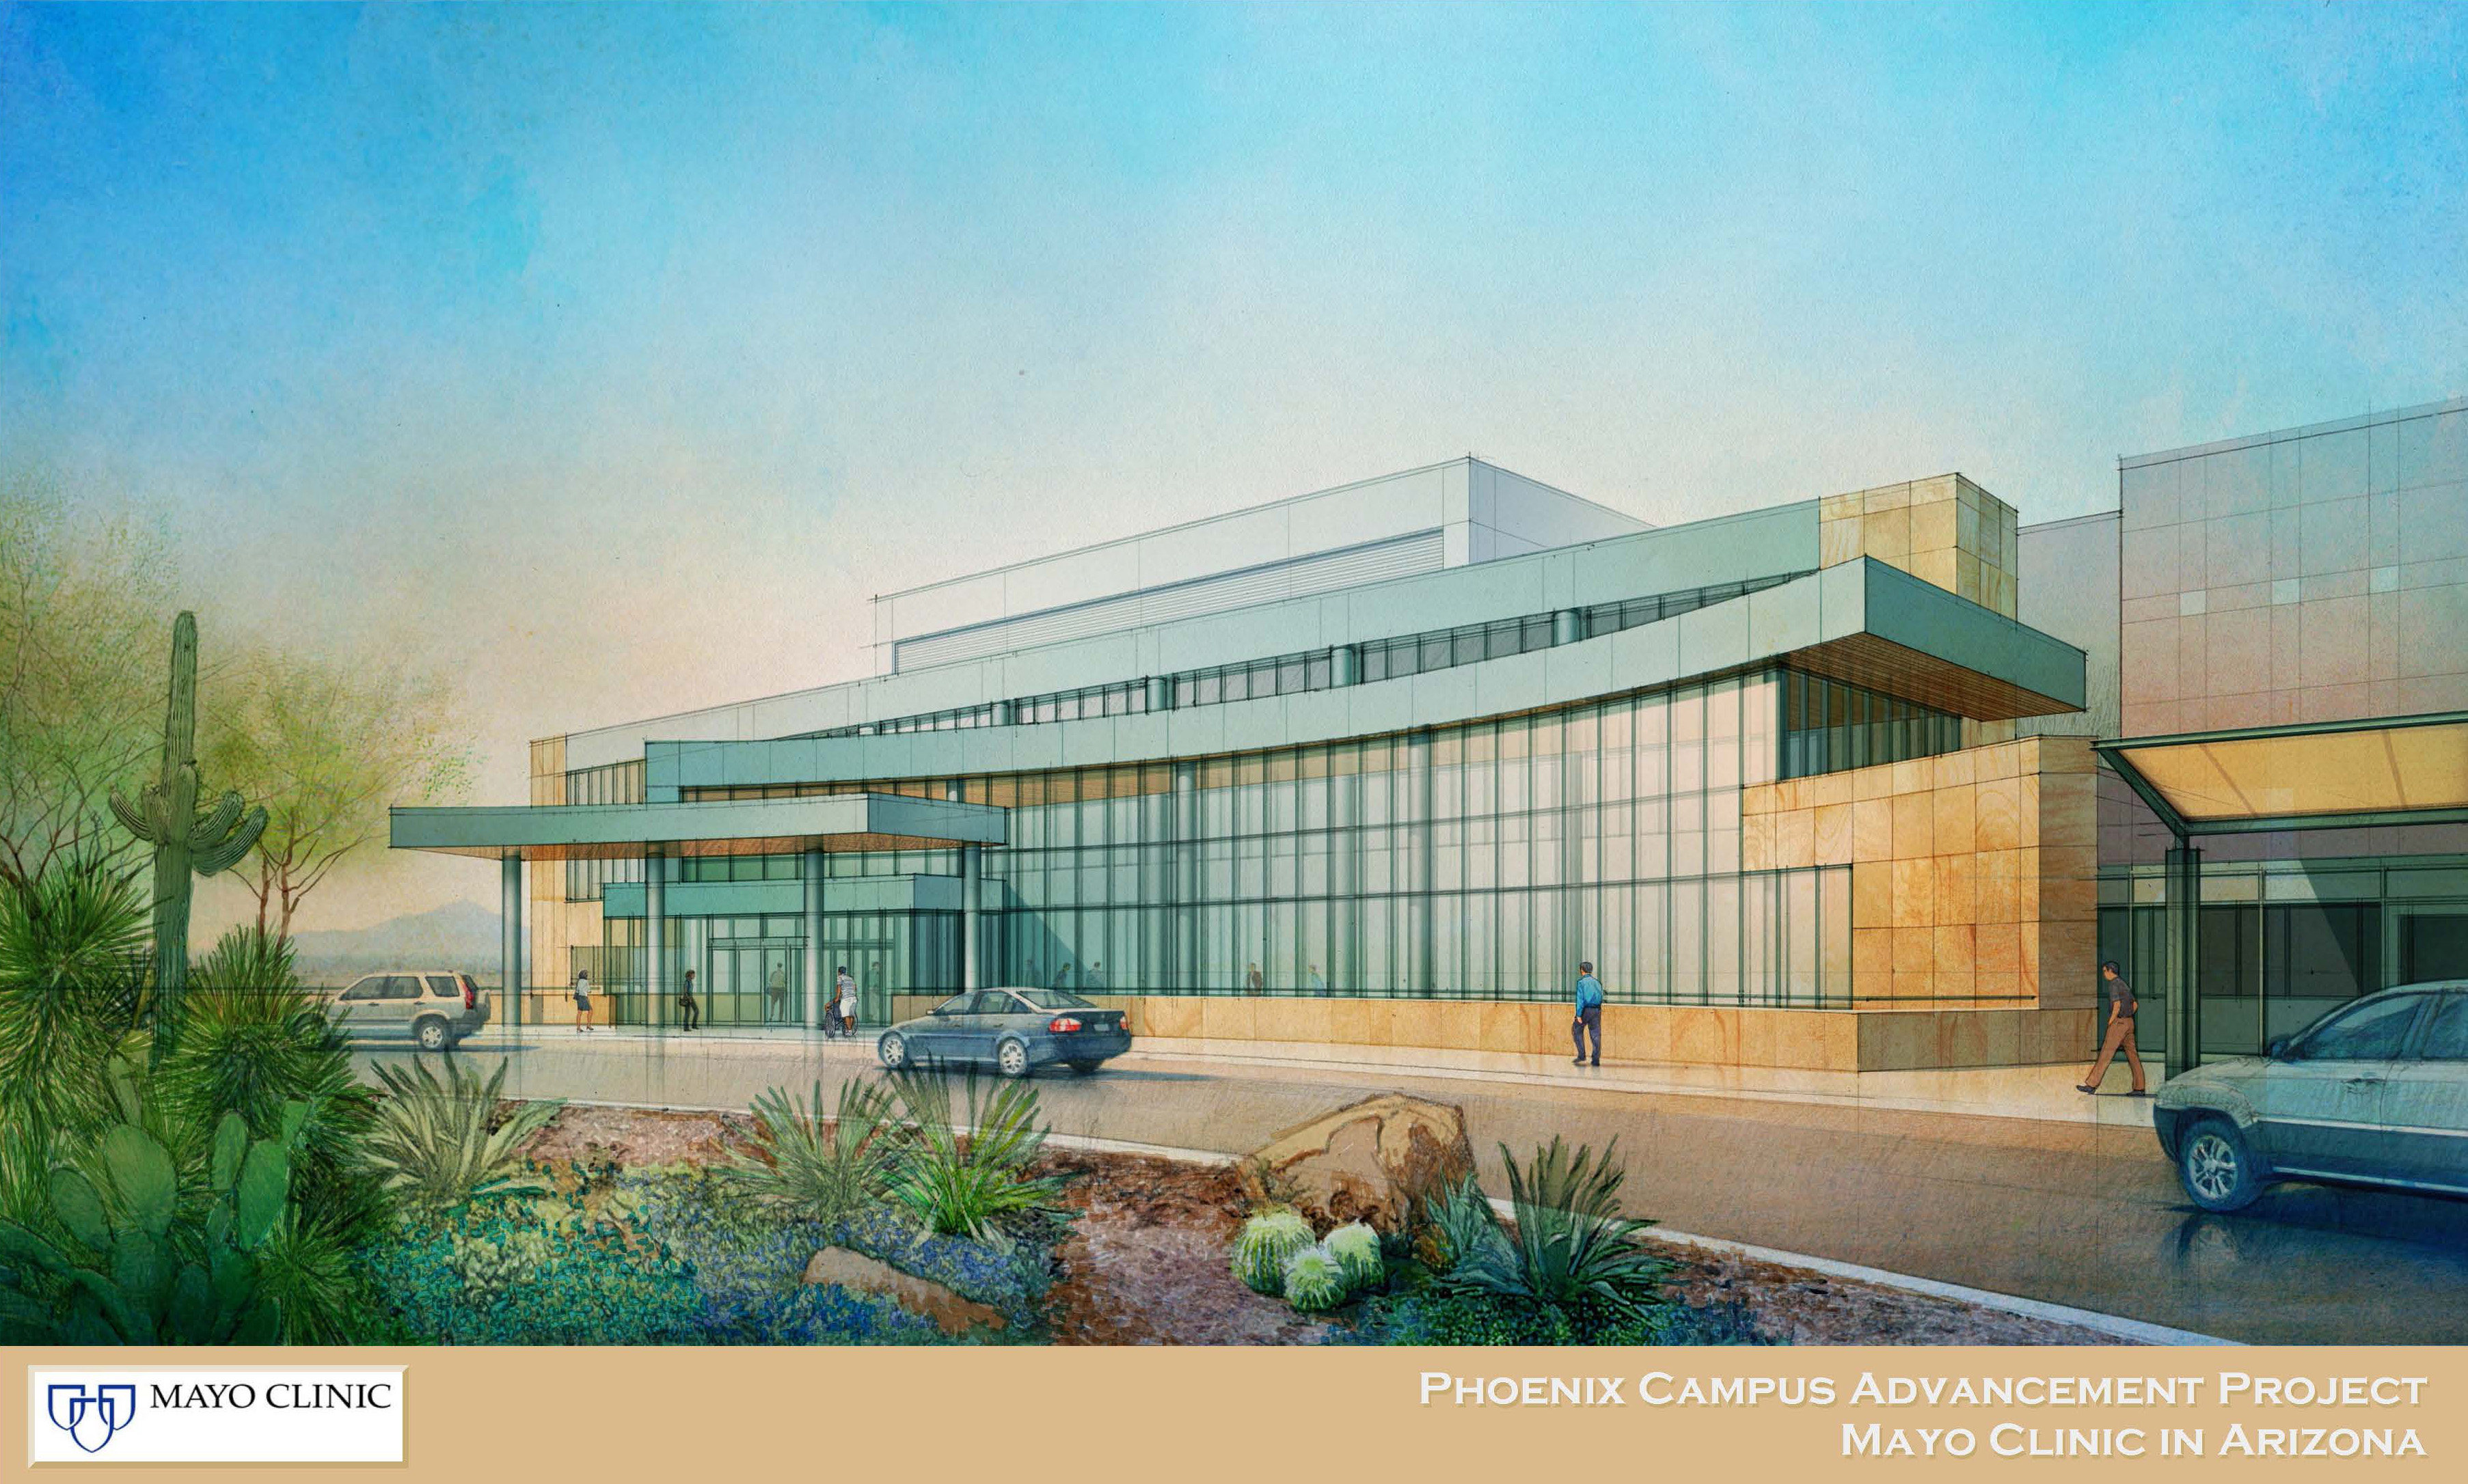 Major Expansion for Cancer Center on Mayo Clinic Campus in